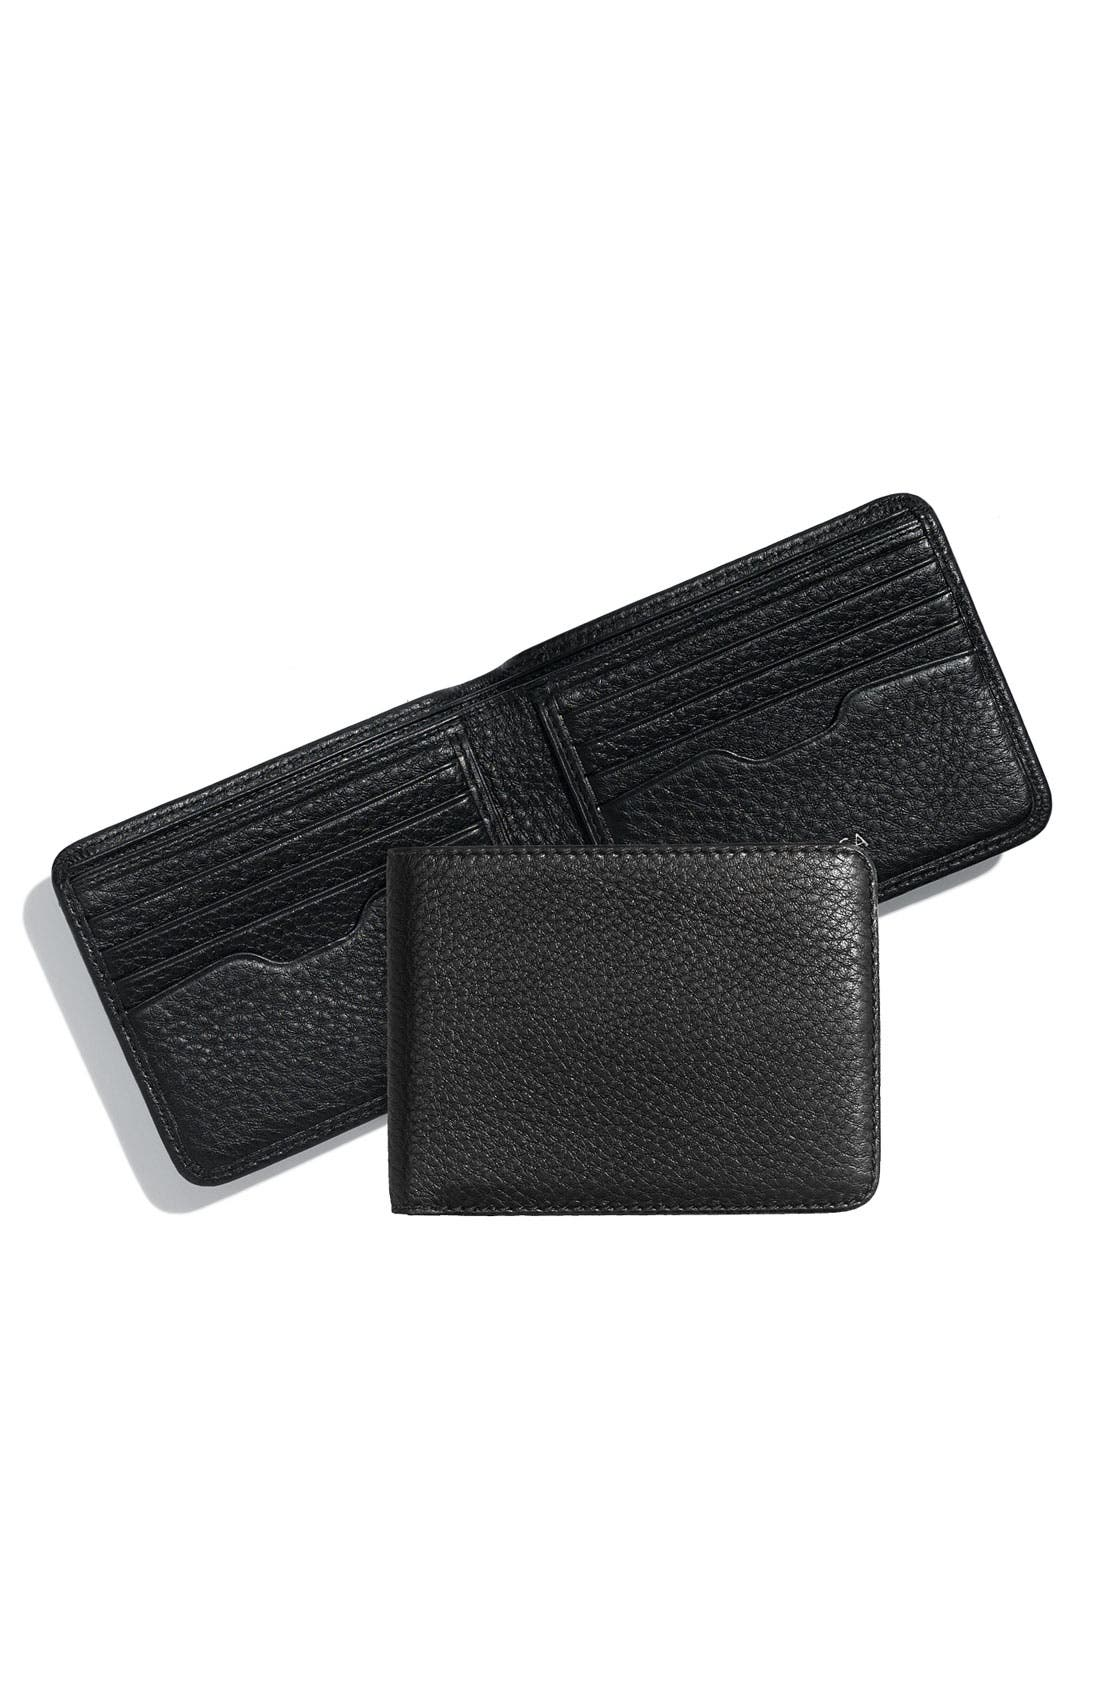 Main Image - Bosca 'Deluxe Executive' Shrunken Leather Wallet